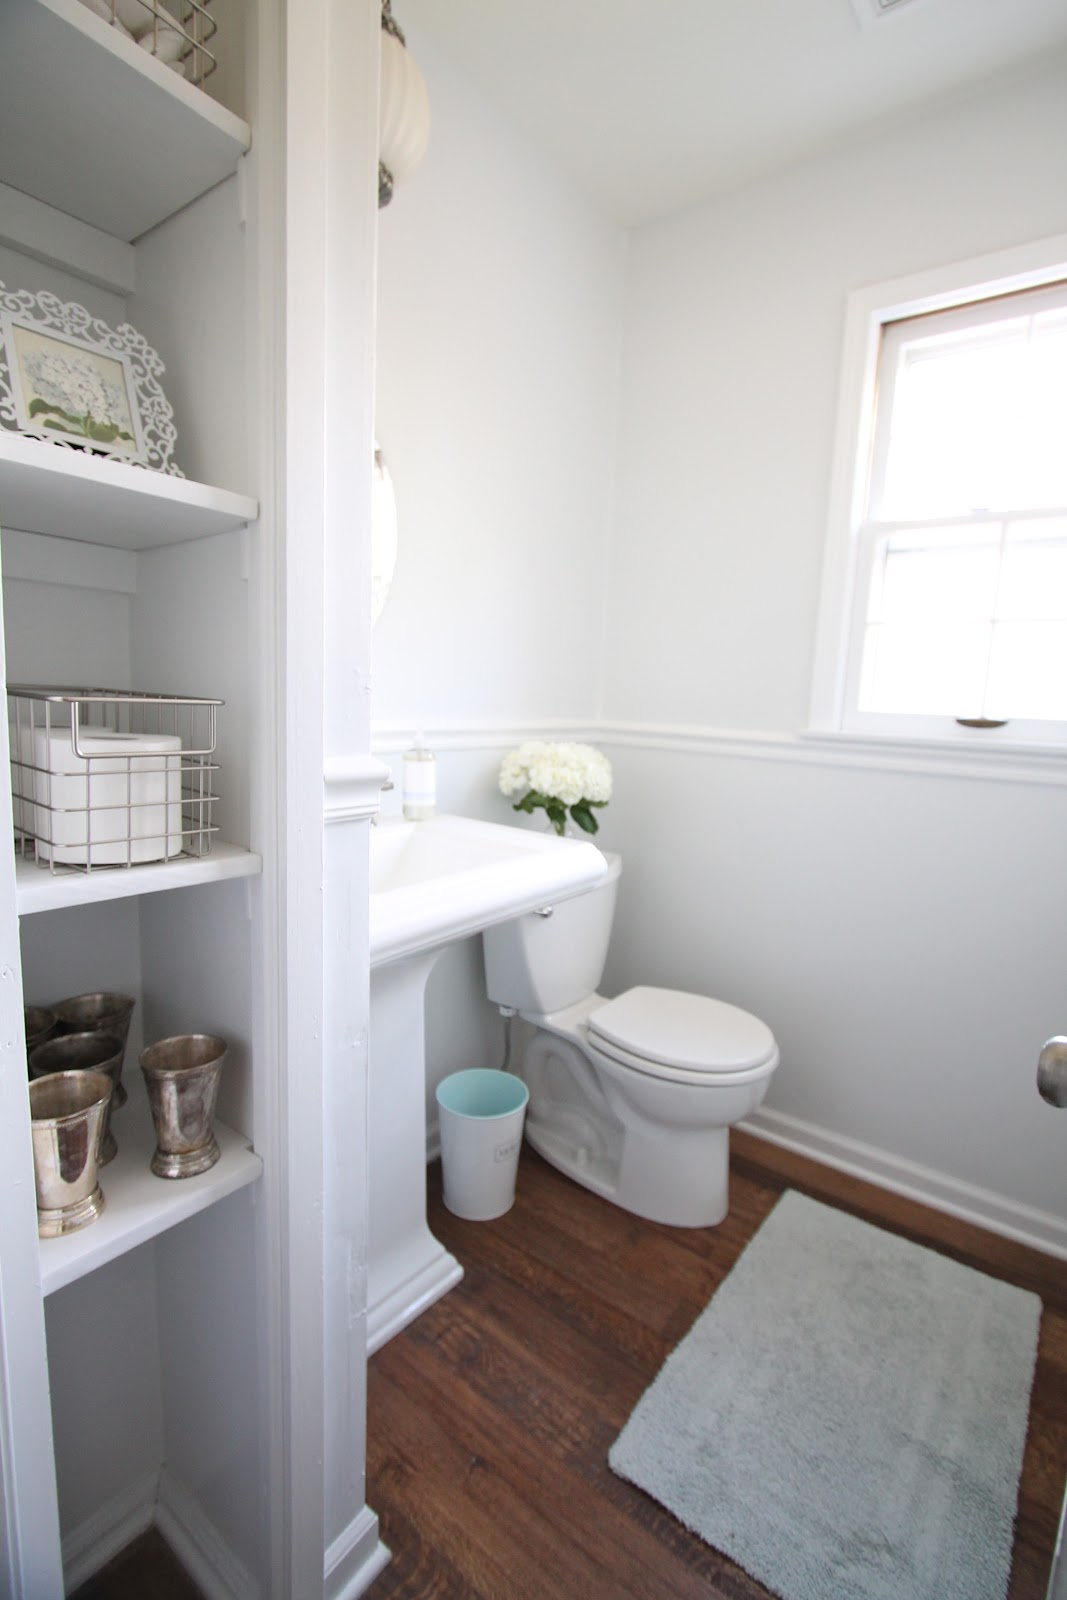 Remodel Bathroom Blog diy bathroom remodel - julie blanner entertaining & home design